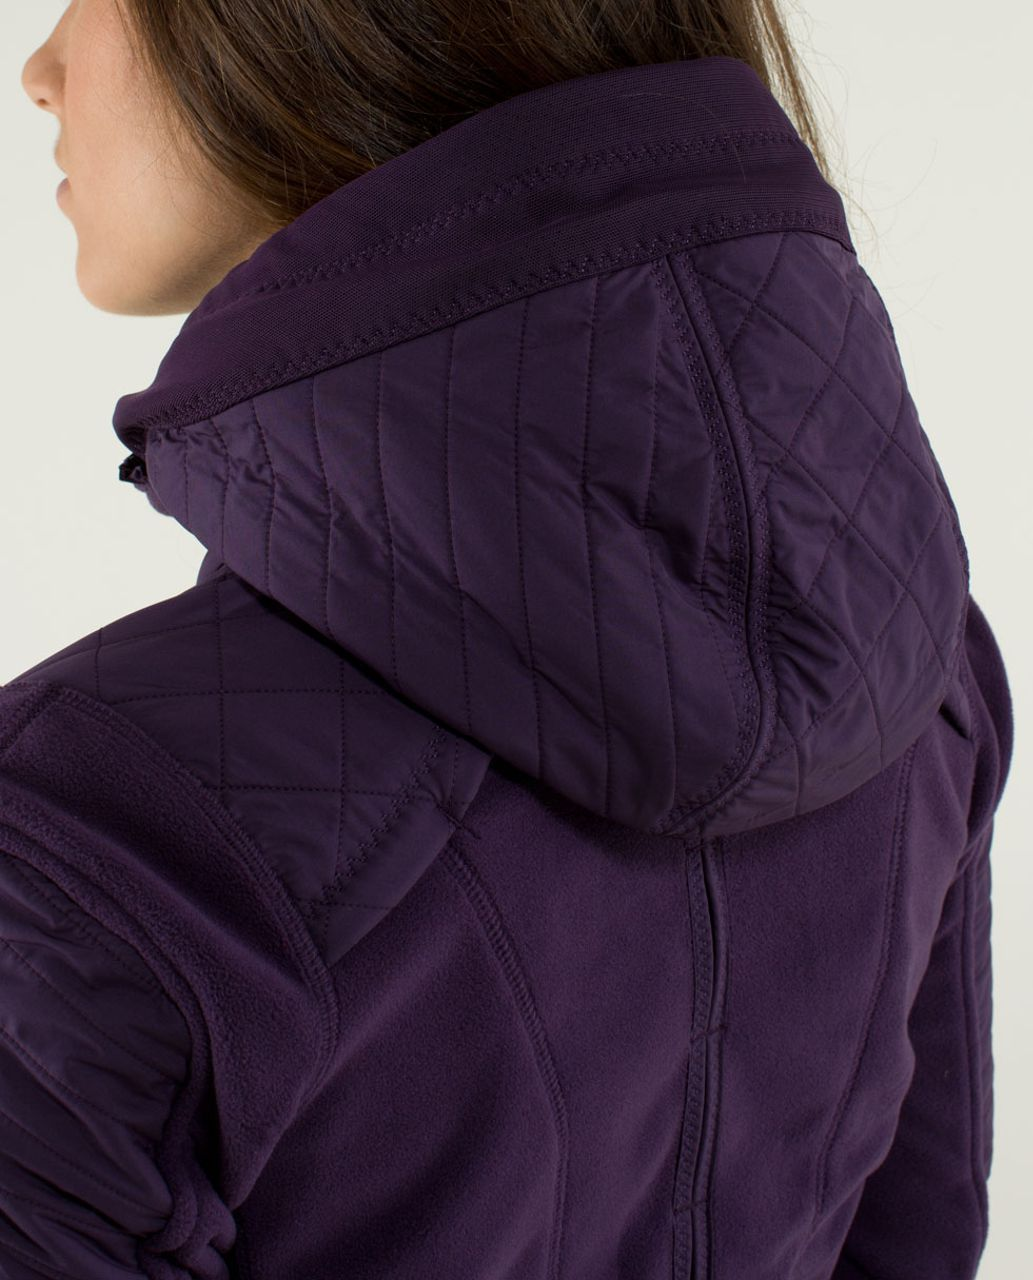 Lululemon Fleecy Keen Jacket - Deep Zinfandel